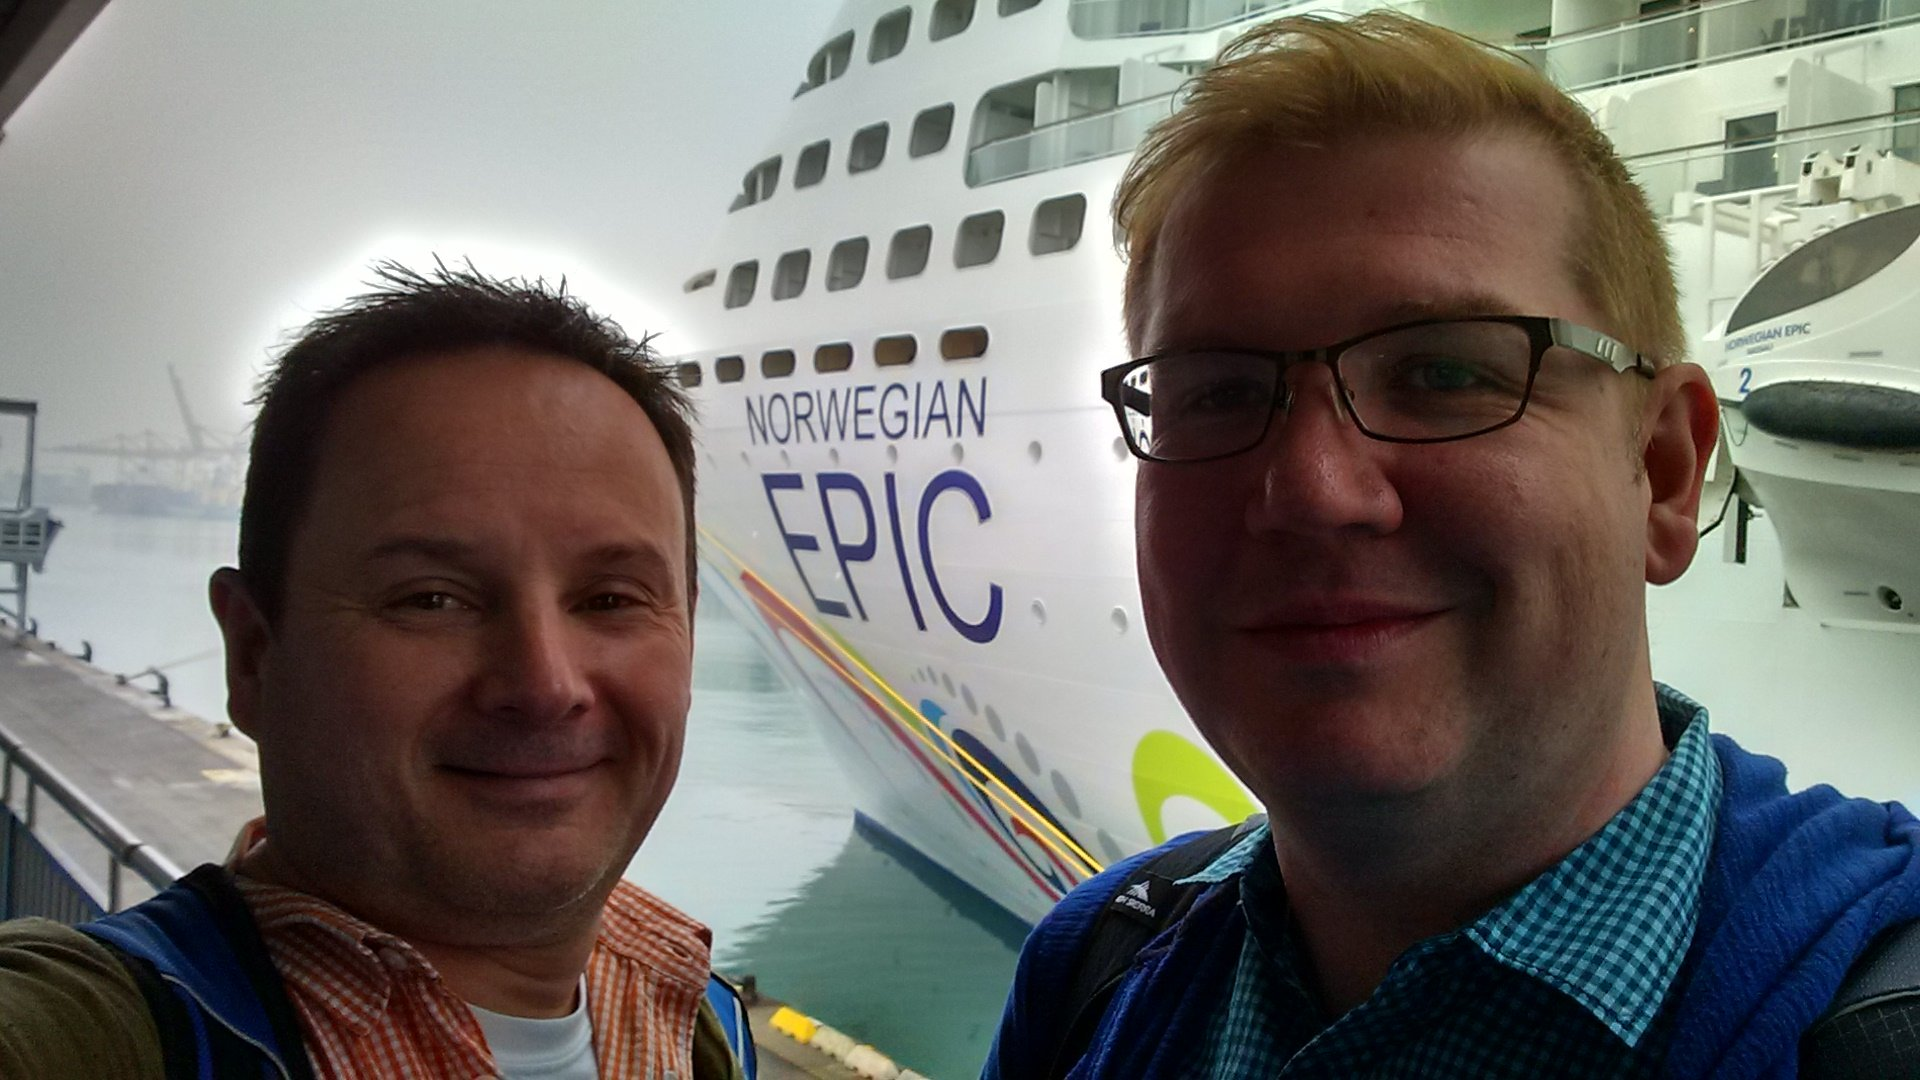 Roguetrippers getting ready to board the Norwegian Epic for our Mediterranean cruise from Spain to Italy in December 2016.